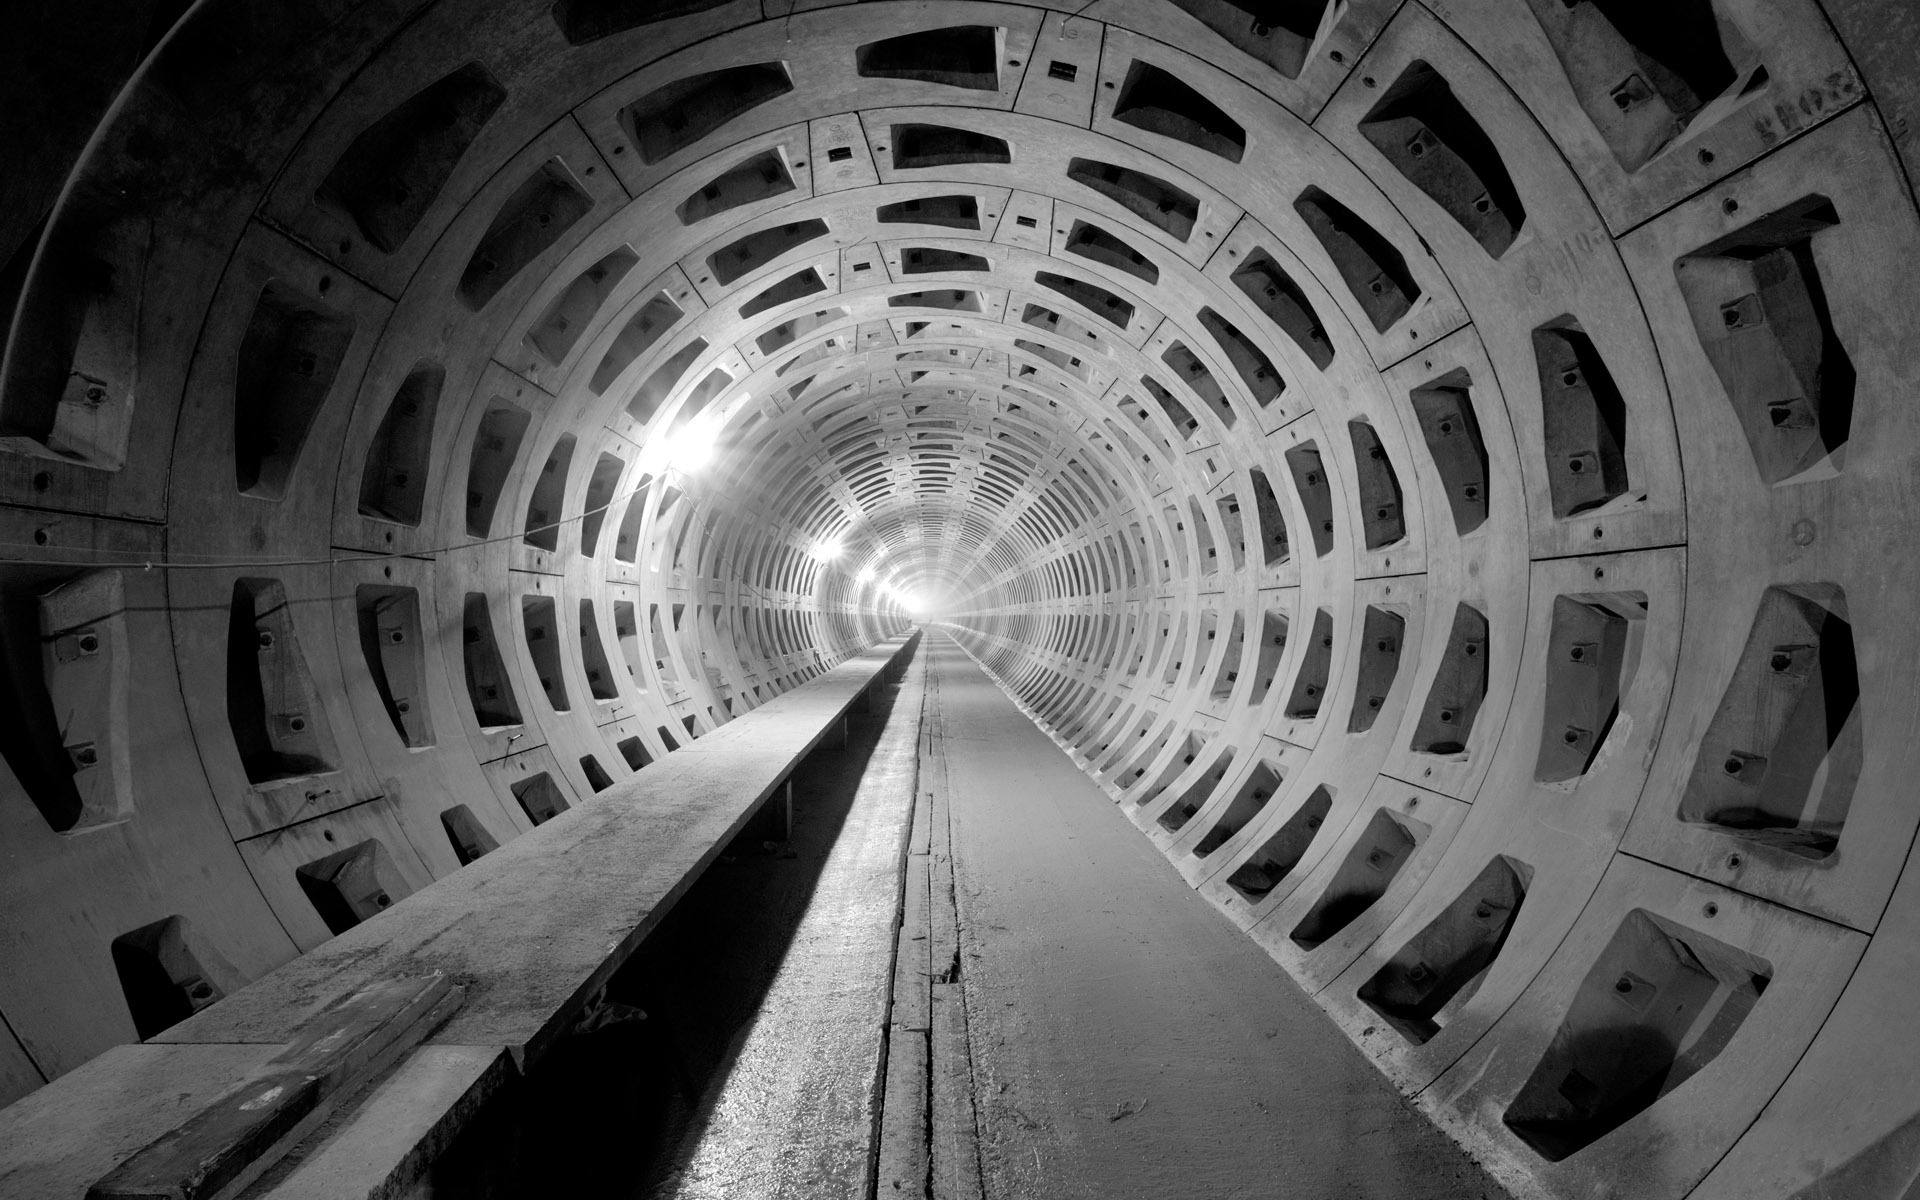 Concrete Tunnel Desktop Wallpaper 50233 1920x1200 px ...